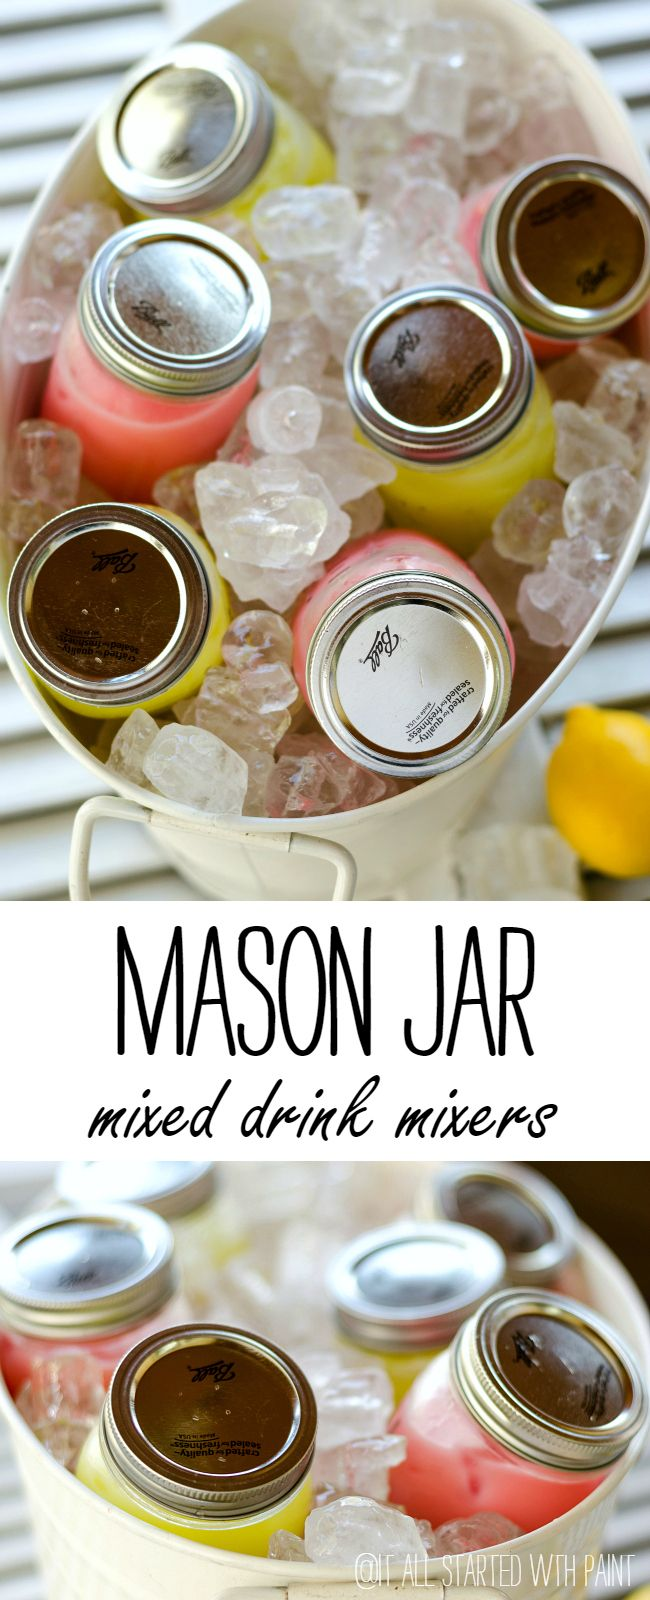 Easy mixed drink preparation and serving idea for summer. Simply put all ingredients in mason jars and put on ice. Guests just need to give the jar a few shakes and enjoy!